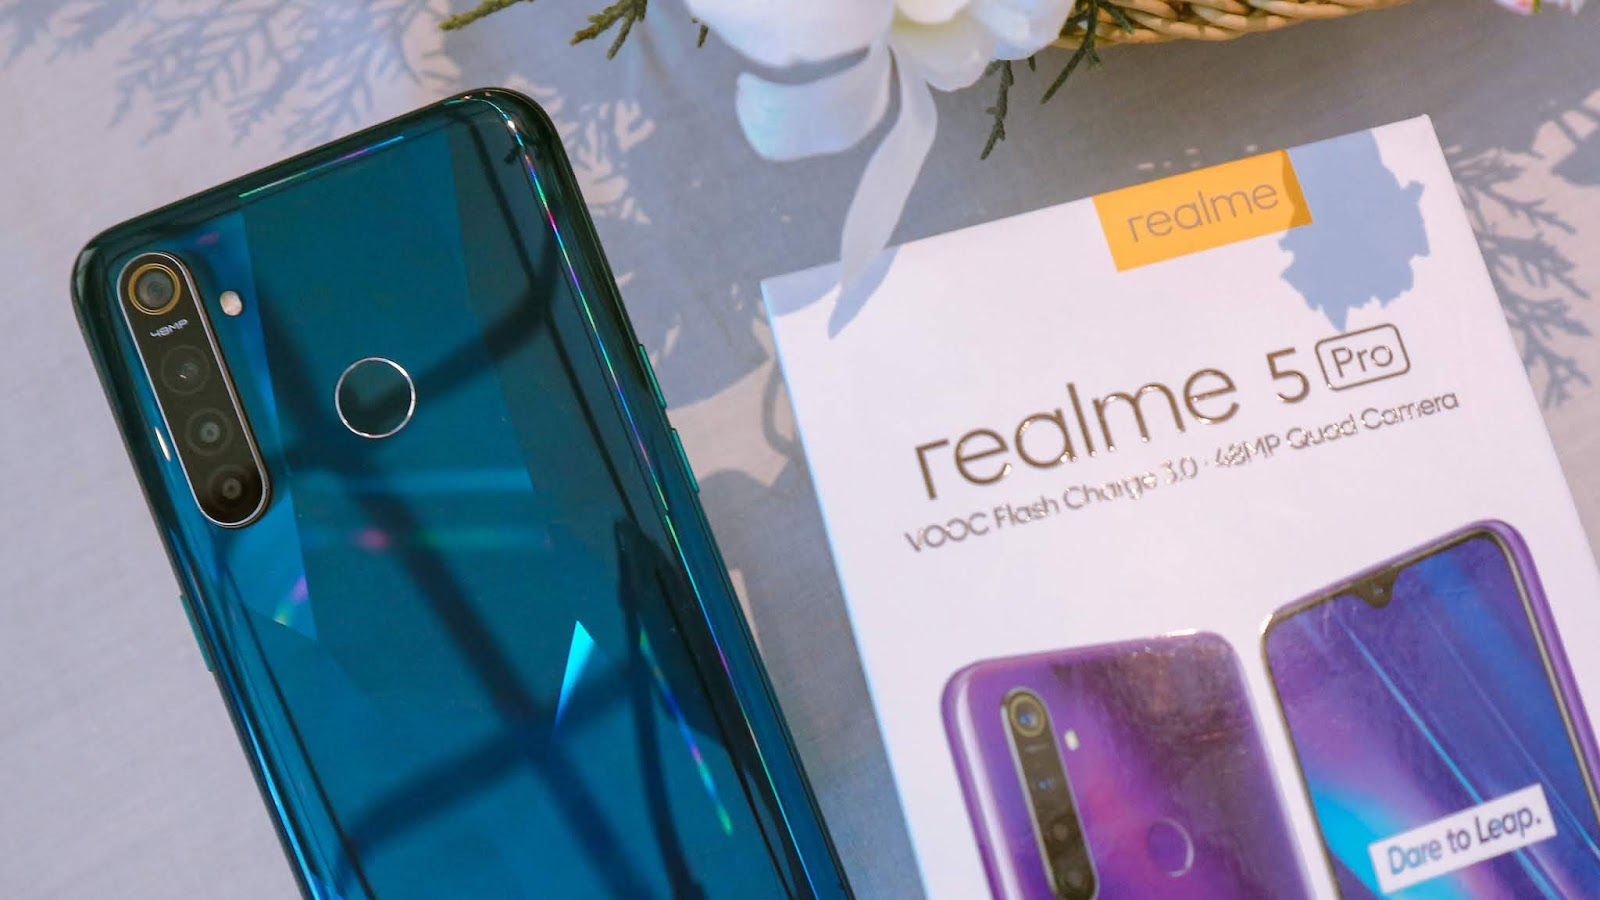 TECH REVIEW: realme 5 PRO - Pro in Camera and Mobile Gaming